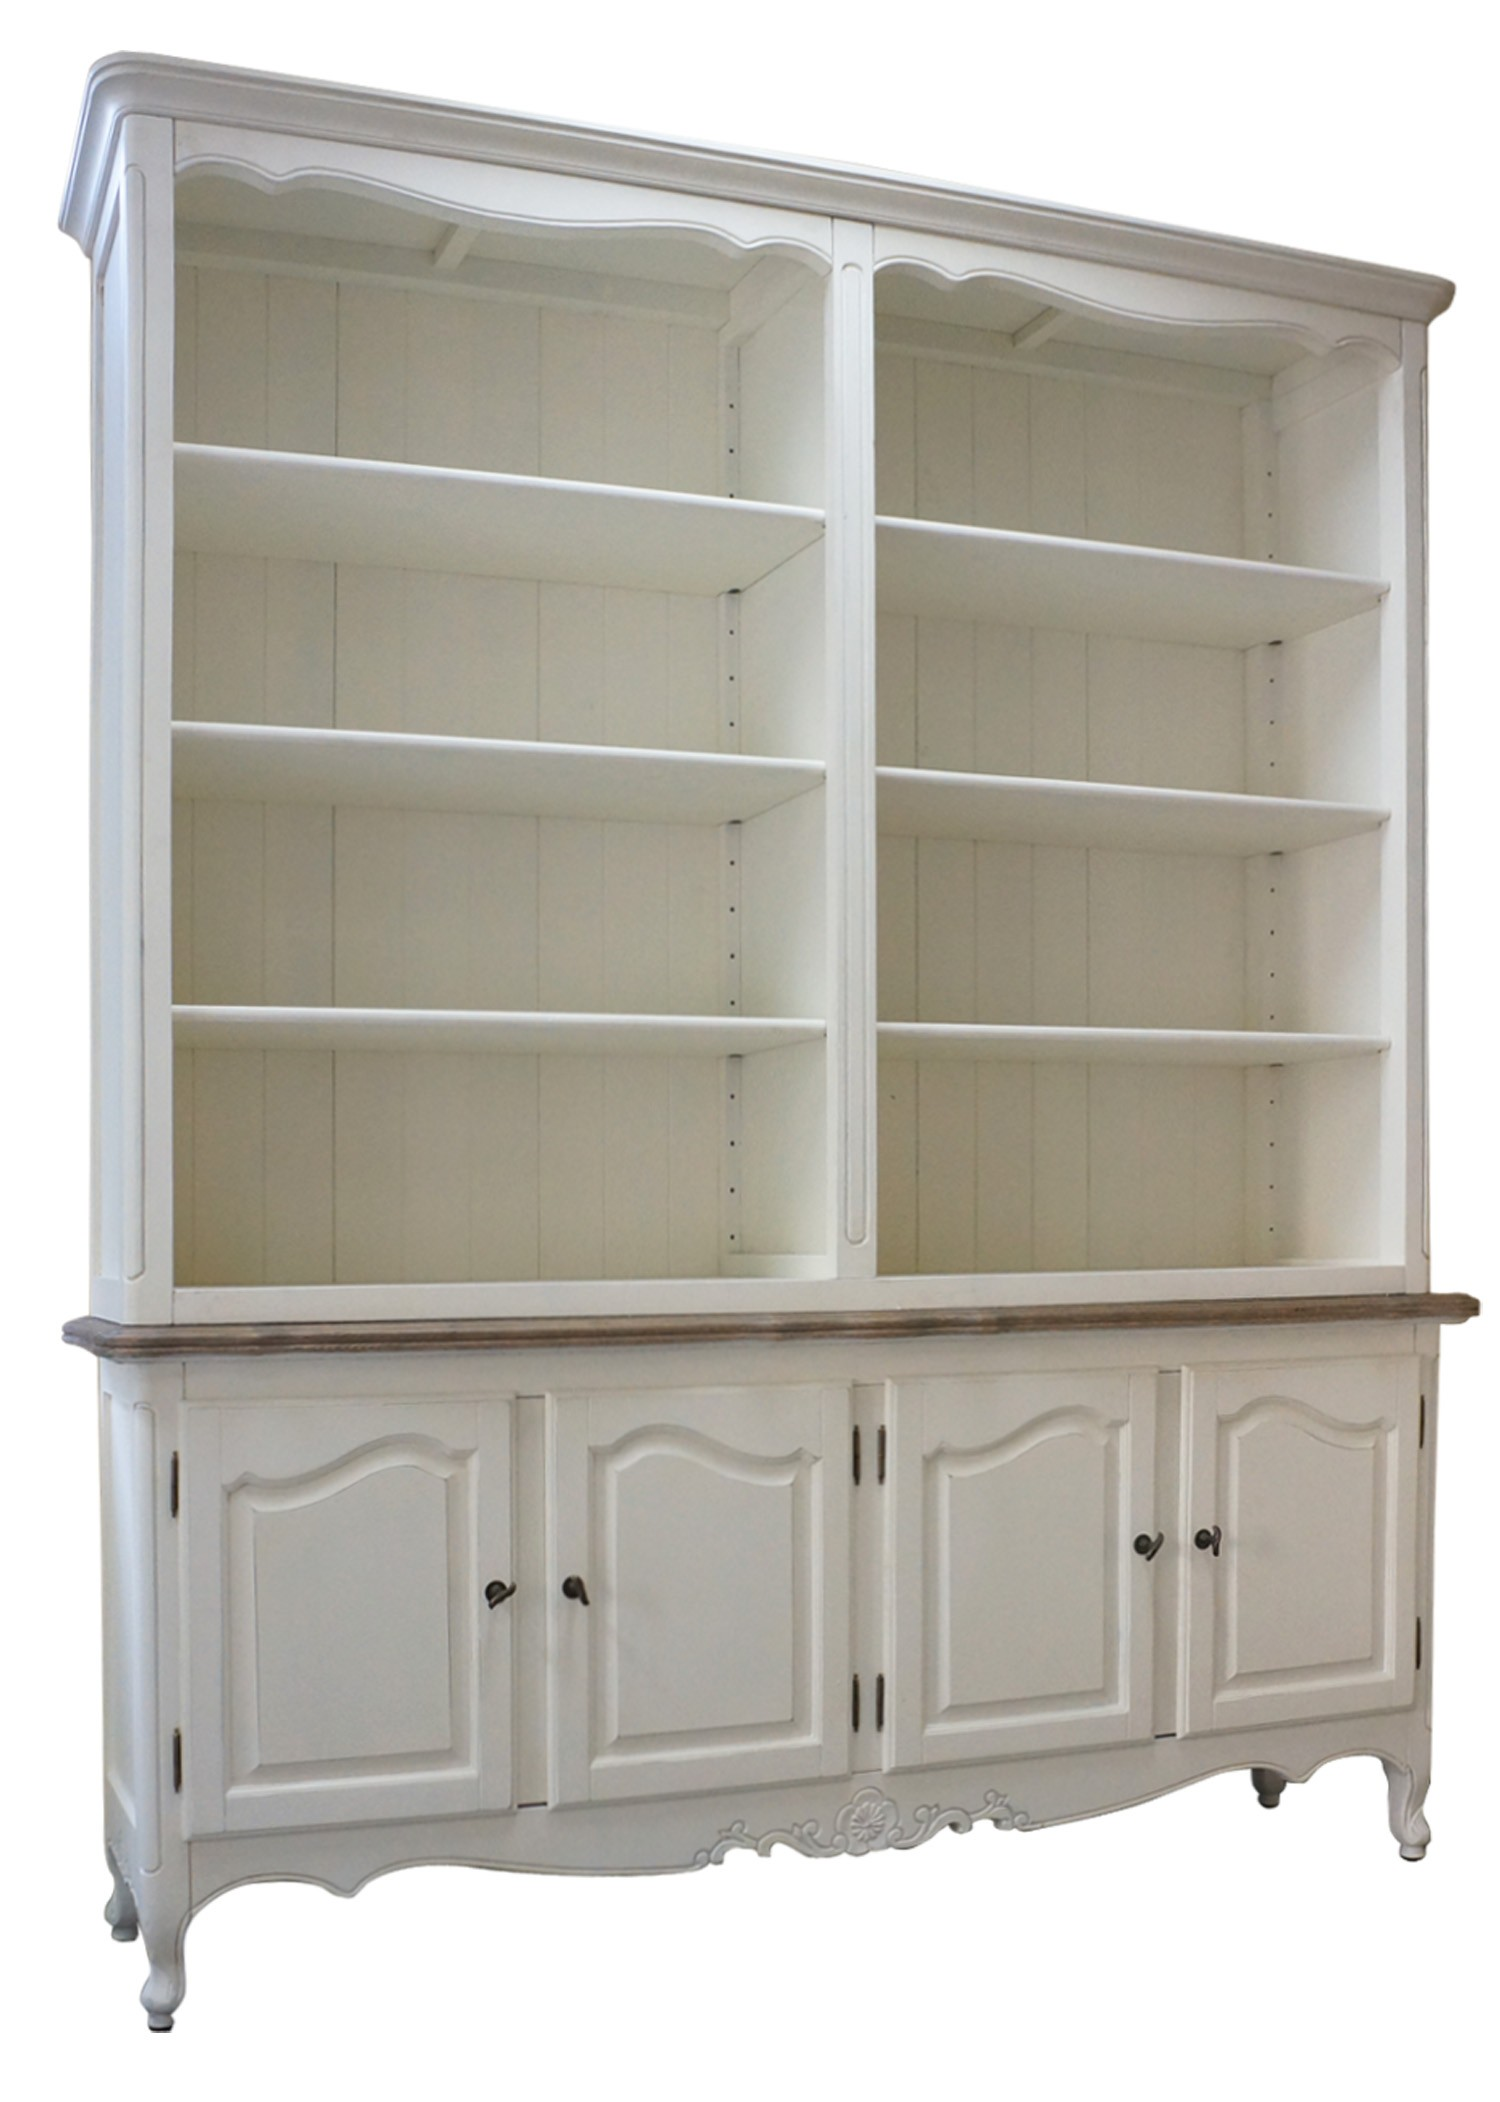 French Provincial Buffet And Open Hutch Sideboard Dresser